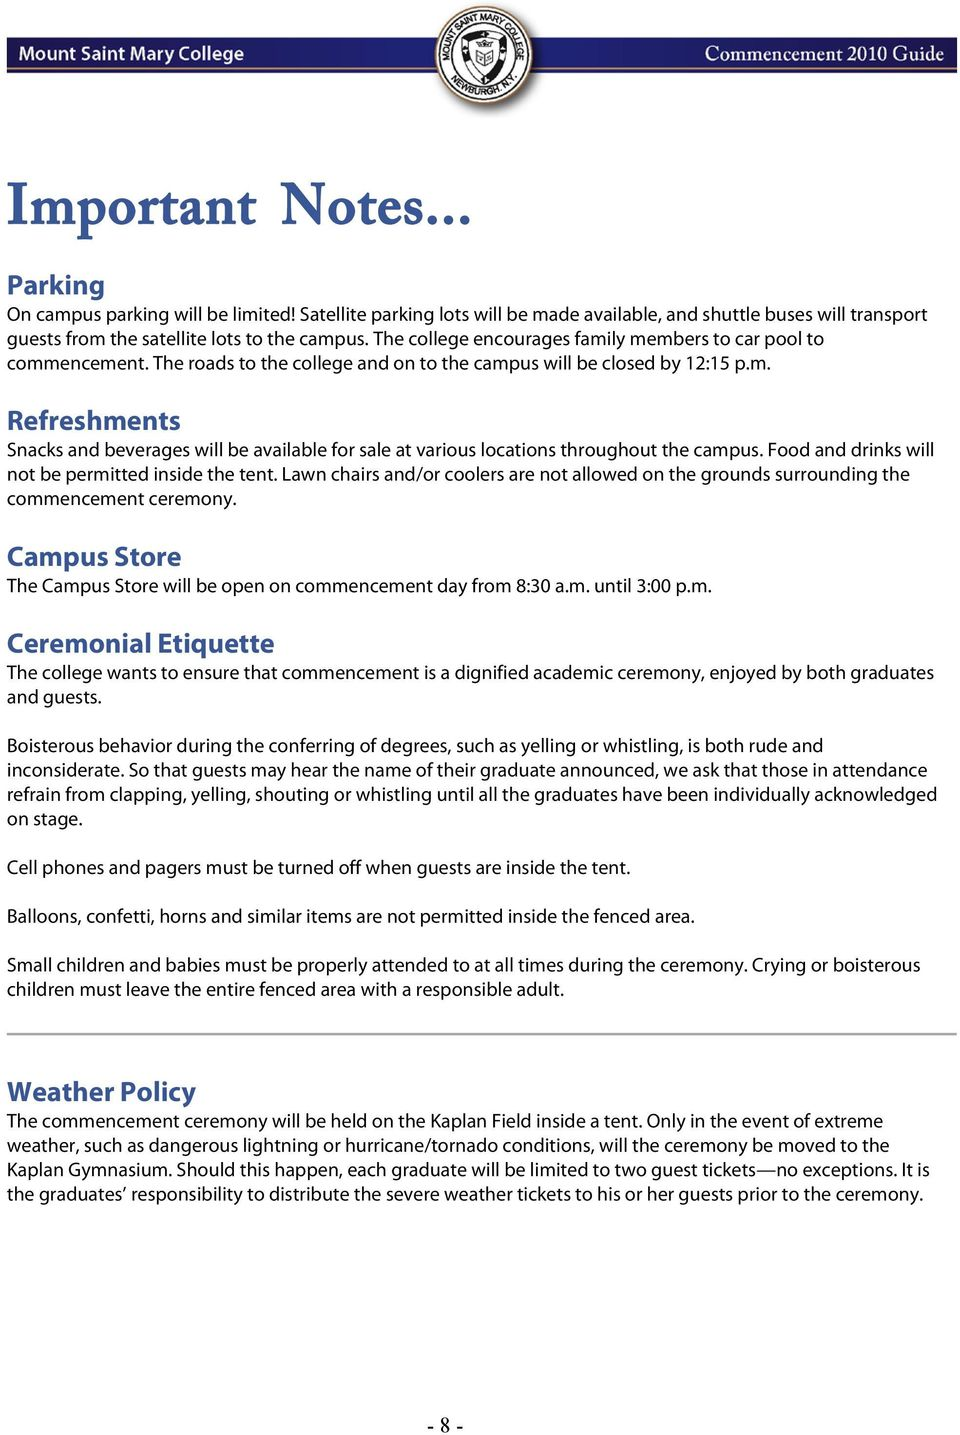 Food and drinks will not be permitted inside the tent. Lawn chairs and/or coolers are not allowed on the grounds surrounding the commencement ceremony.